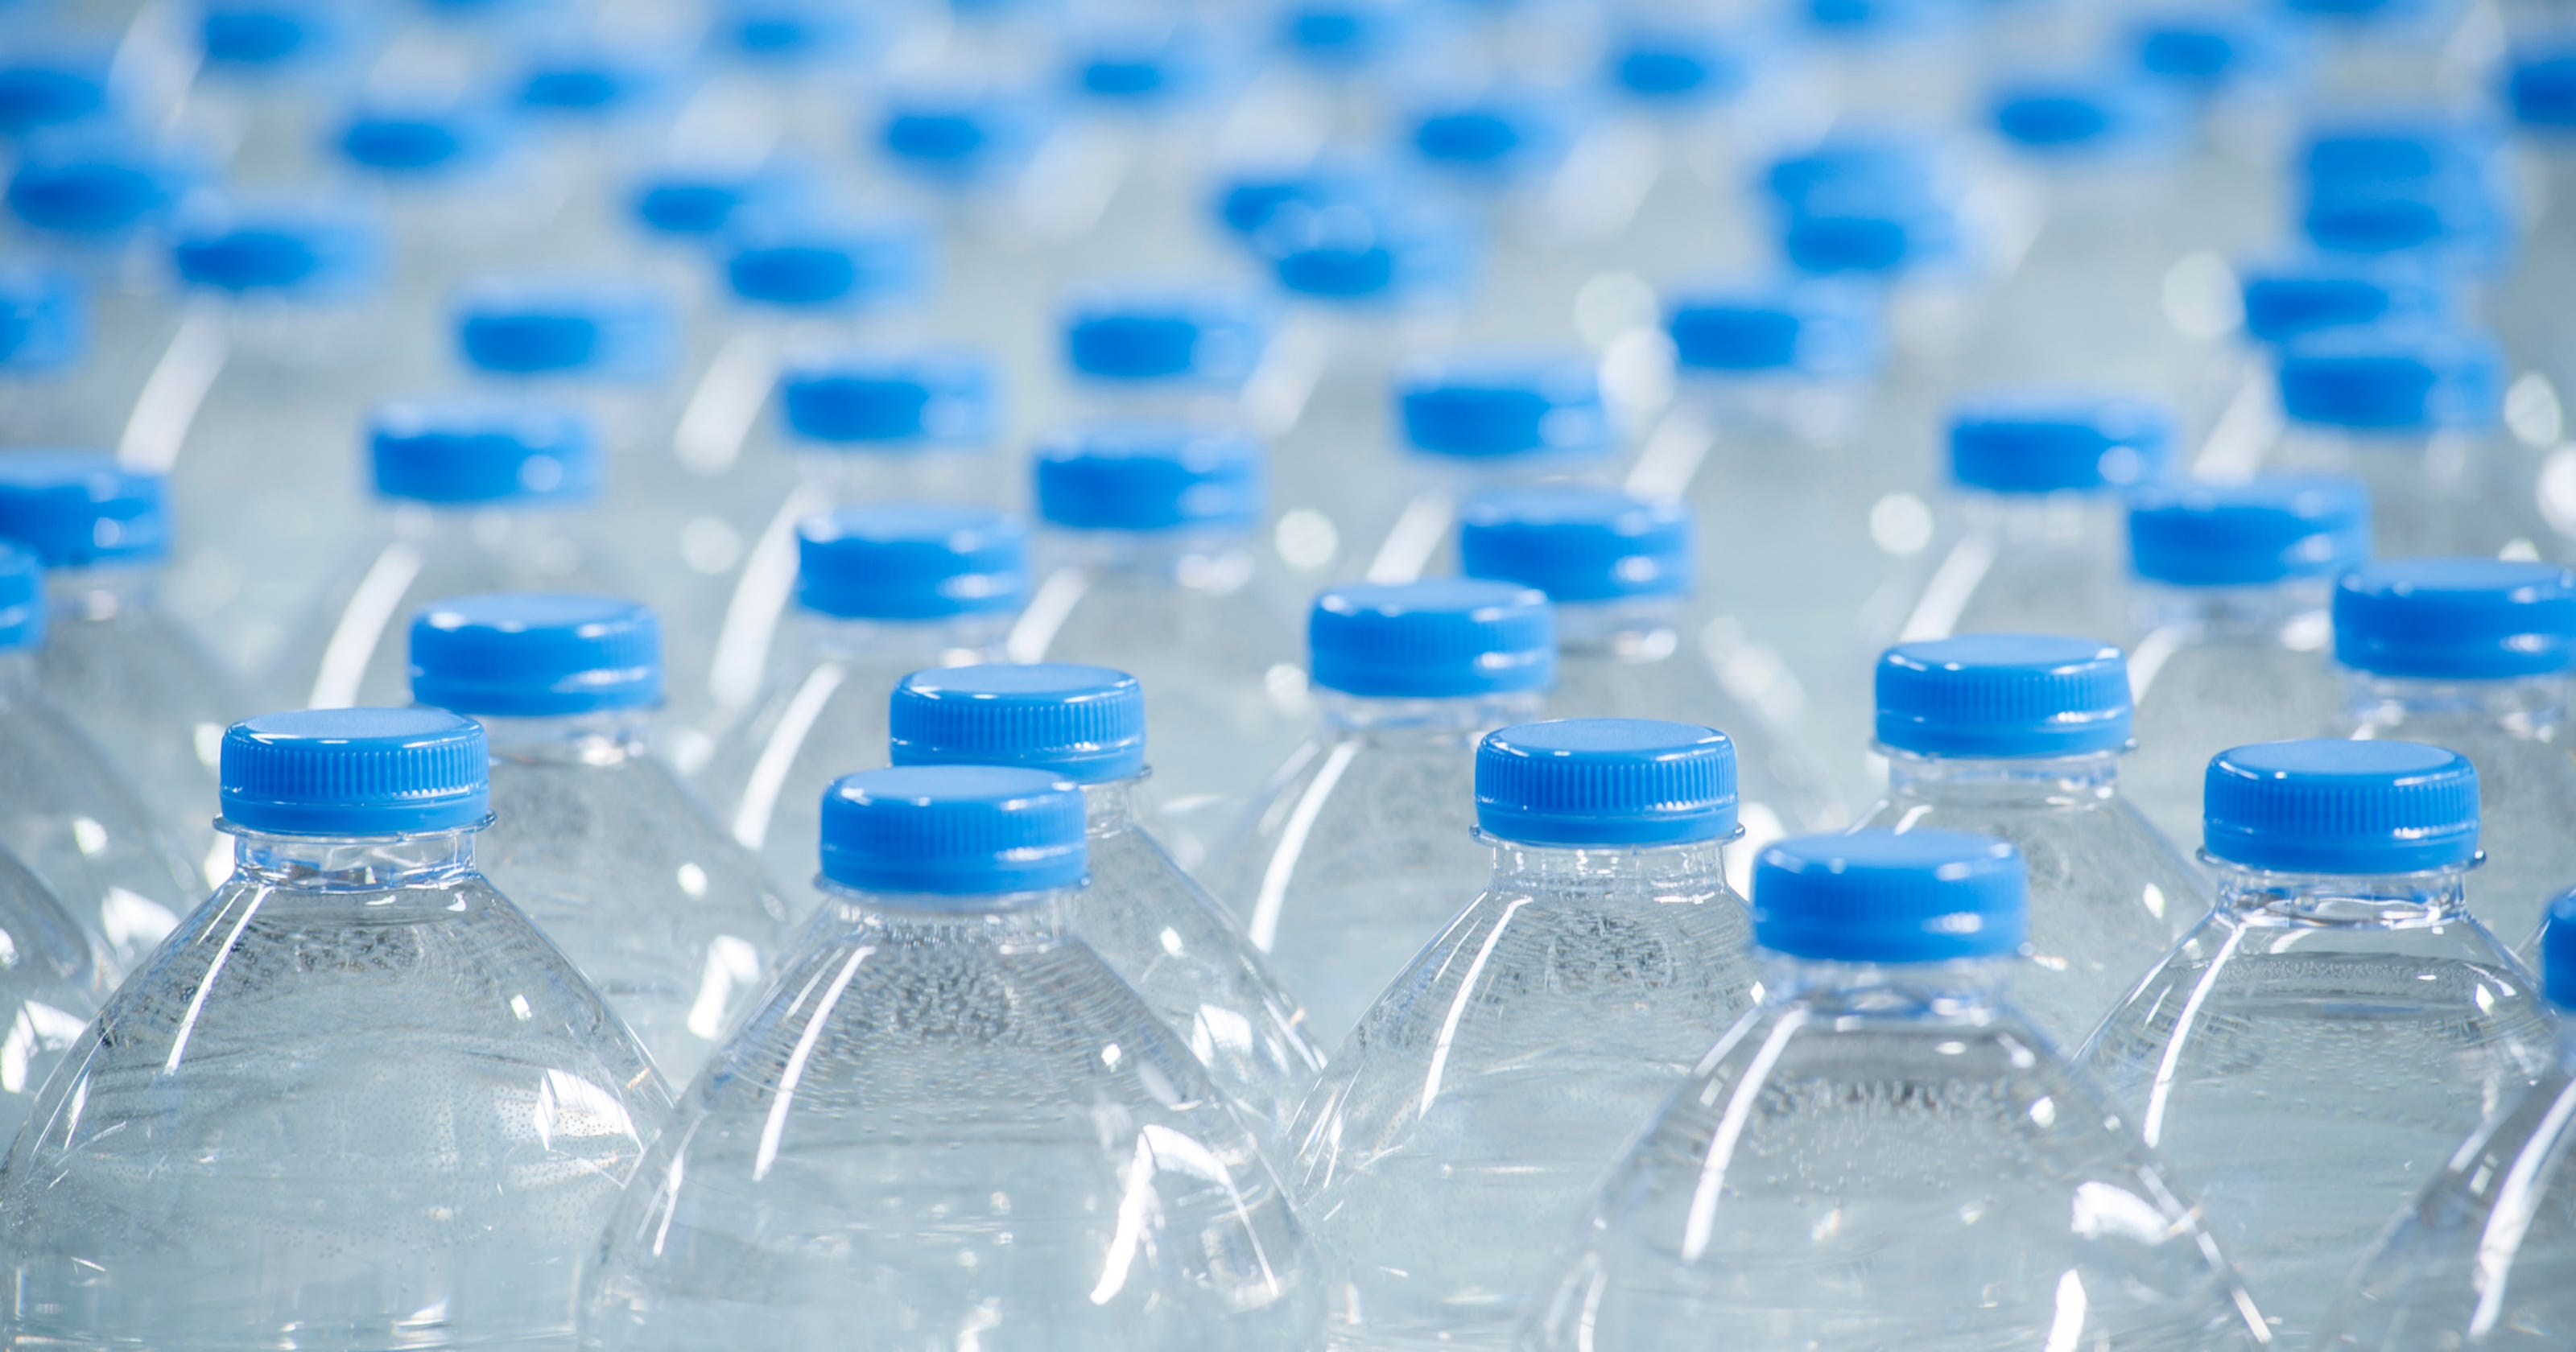 There may be an unsafe amount of arsenic in some bottled water